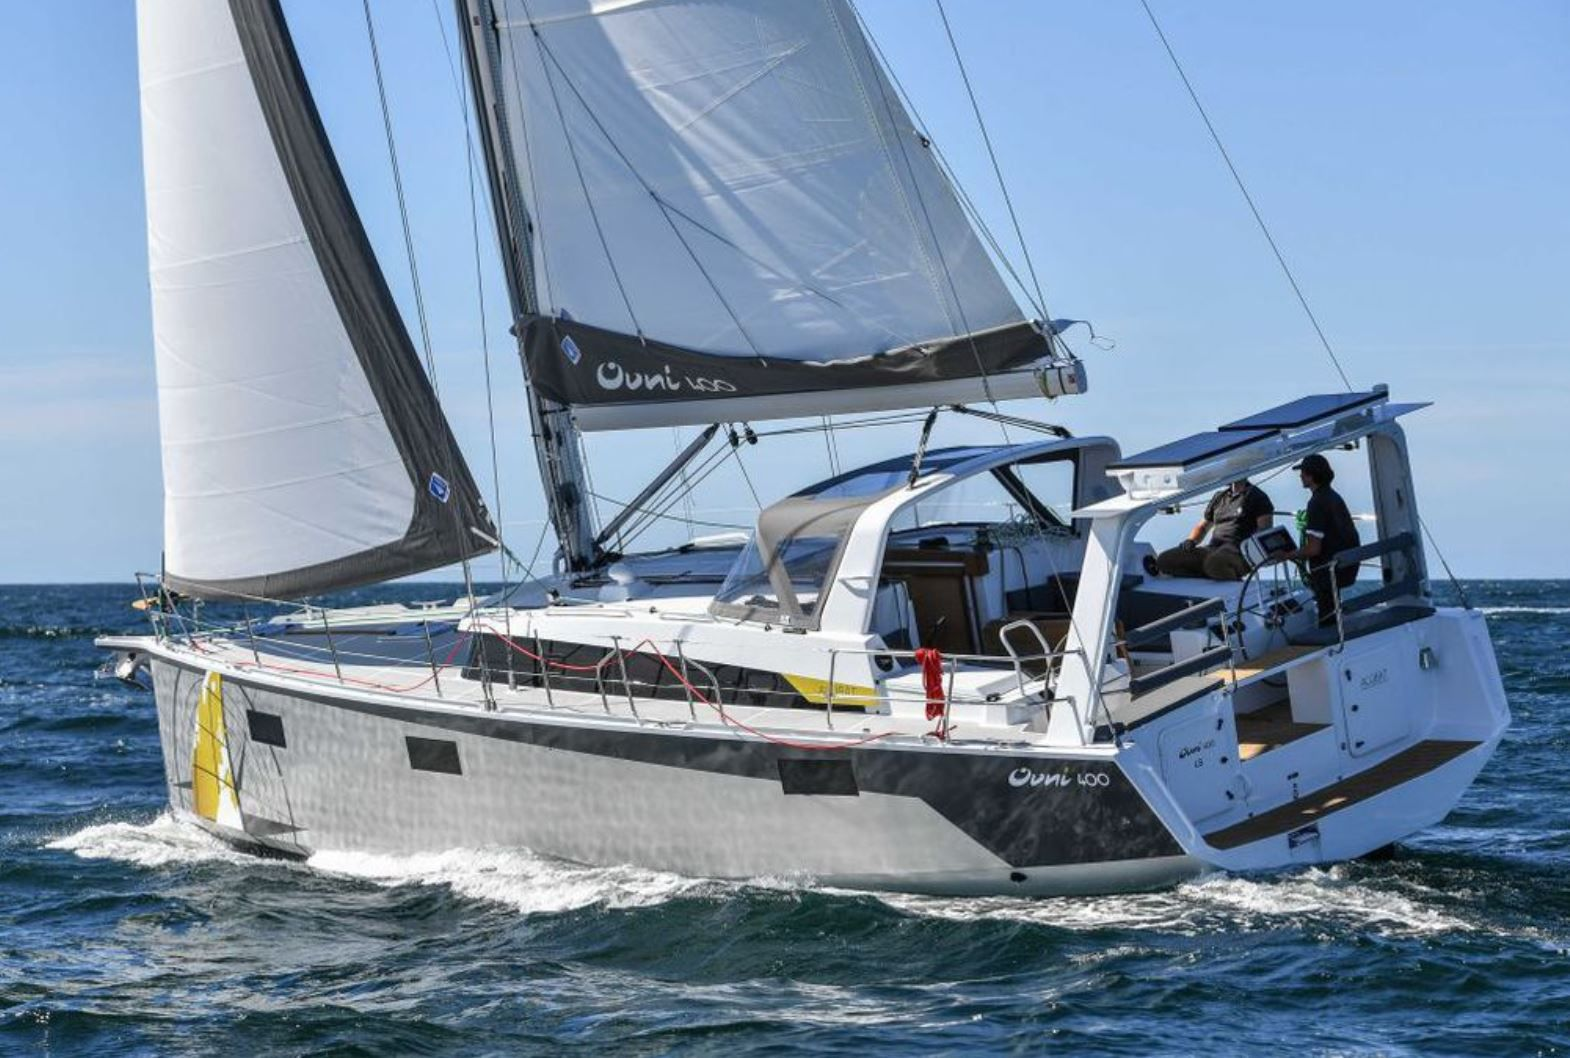 The Ovni 400, the new 40-foot bluewater yacht by Alubat